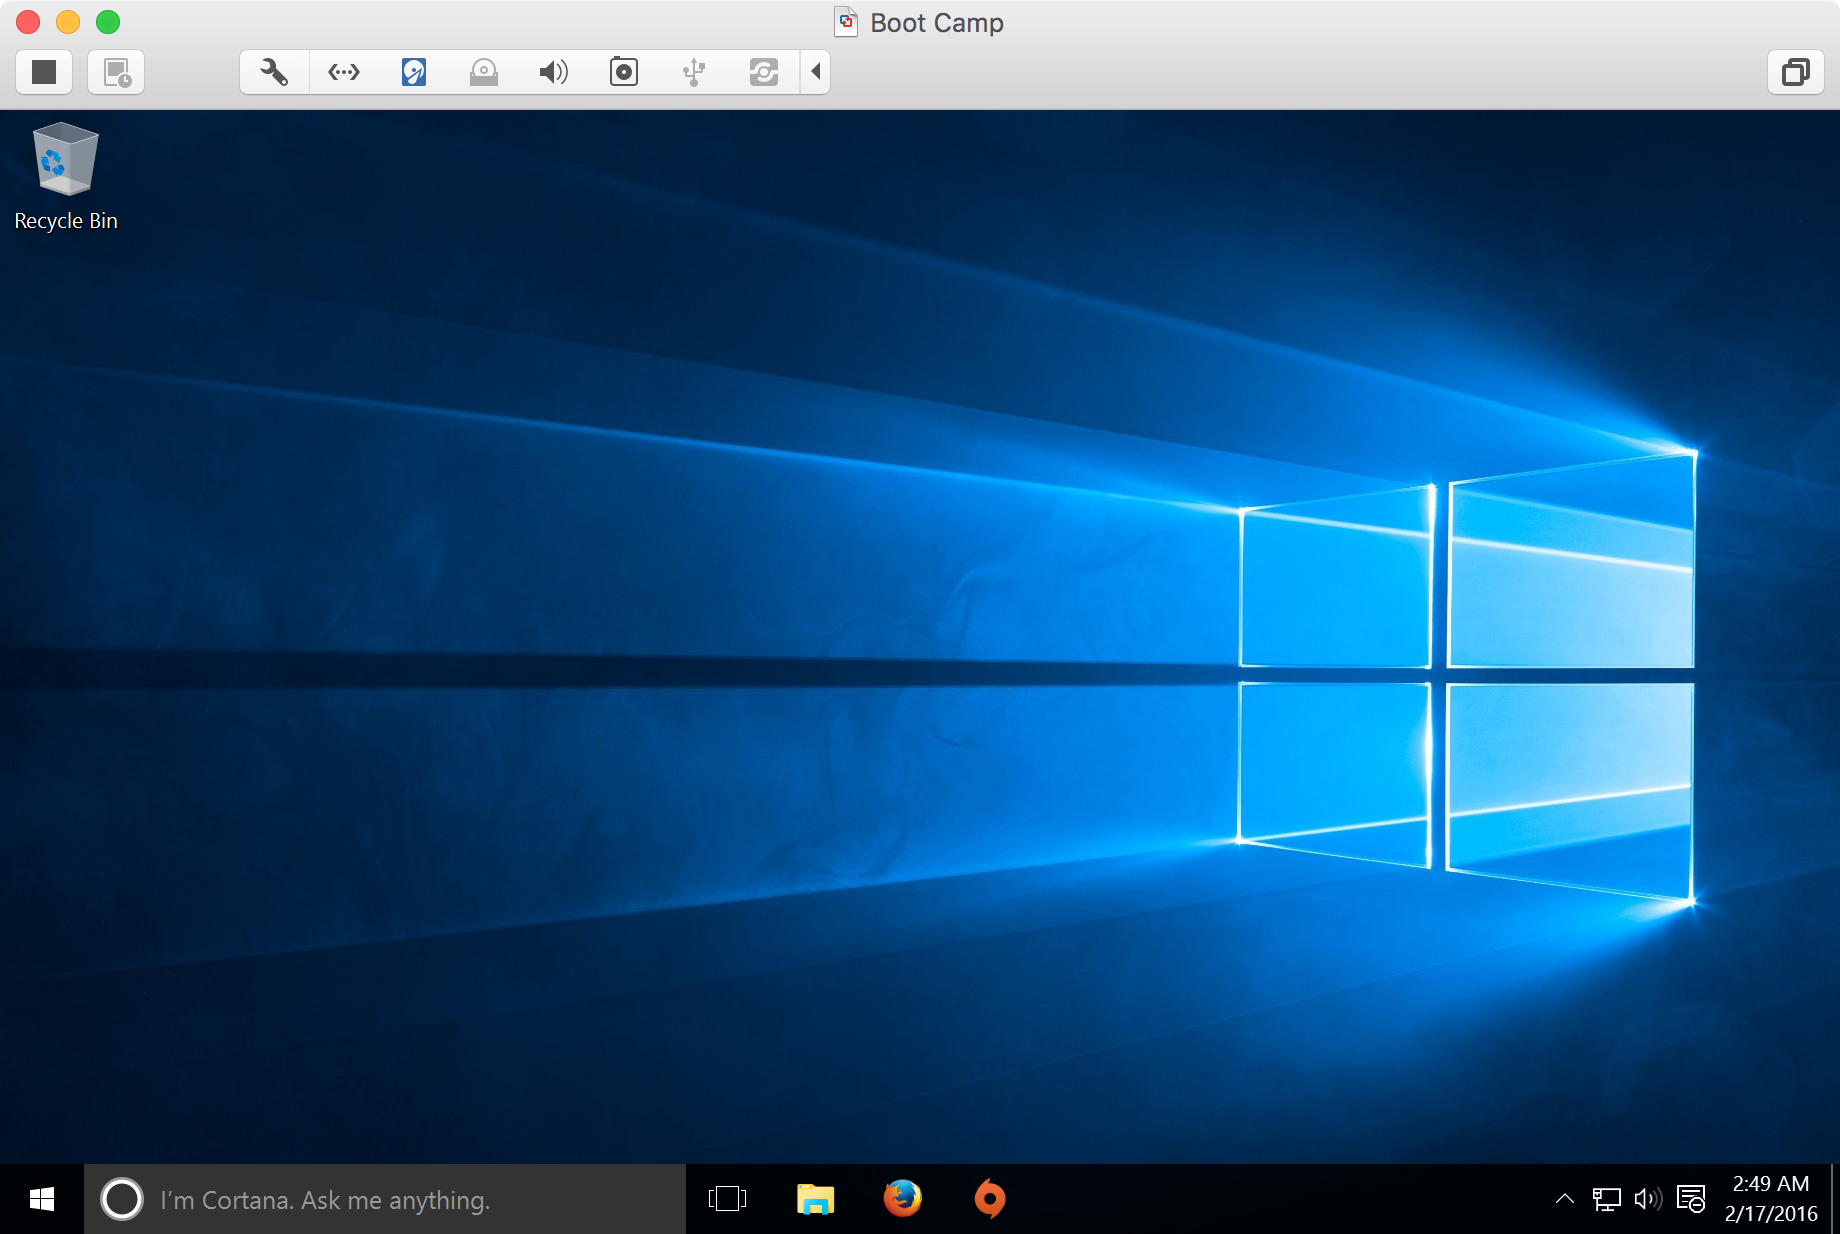 VMware Fusion Windows 10 User Interface